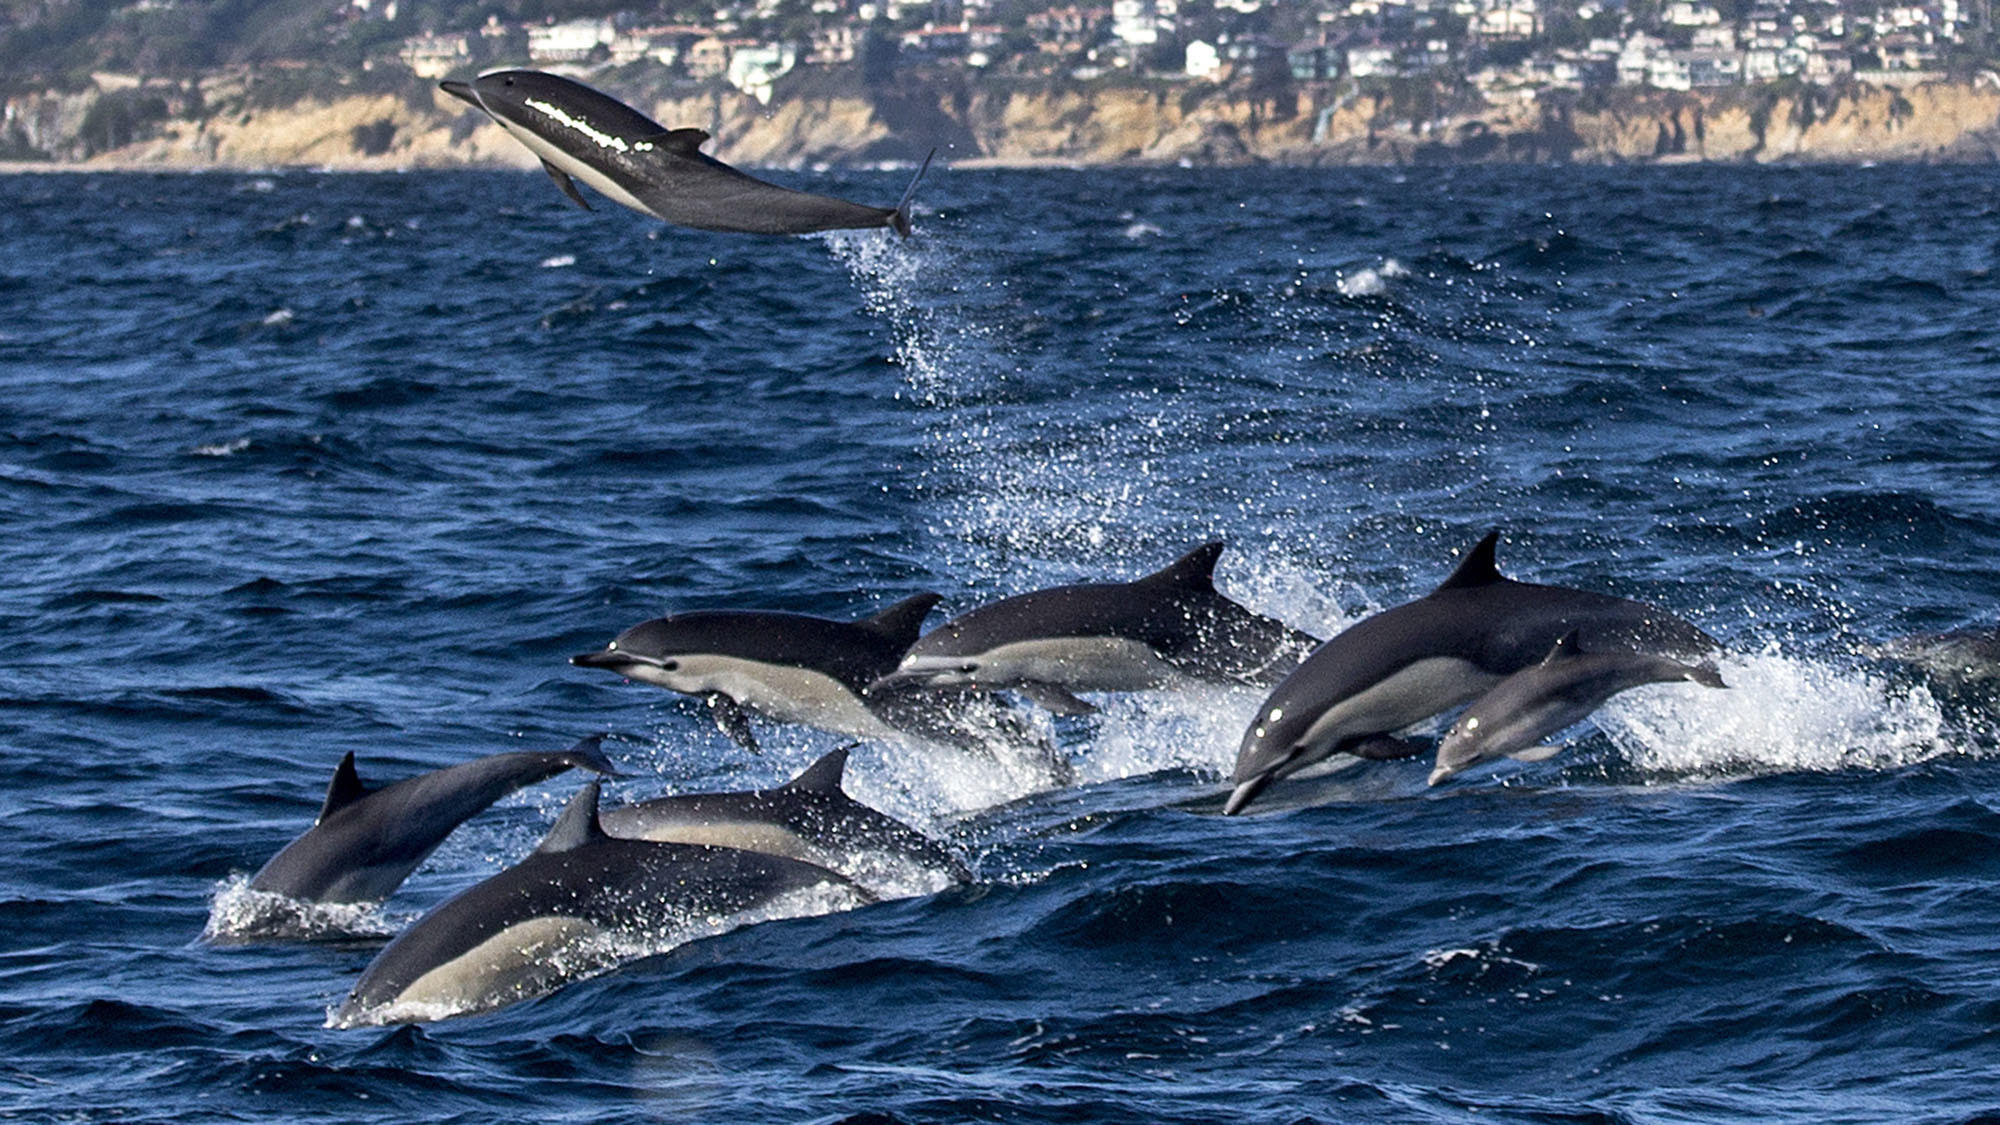 A pod of dolphins leaps out of the water with a view of south Laguna Beach in the background on Aug. 12, 2016. (Allen J. Schaben / Los Angeles Times)